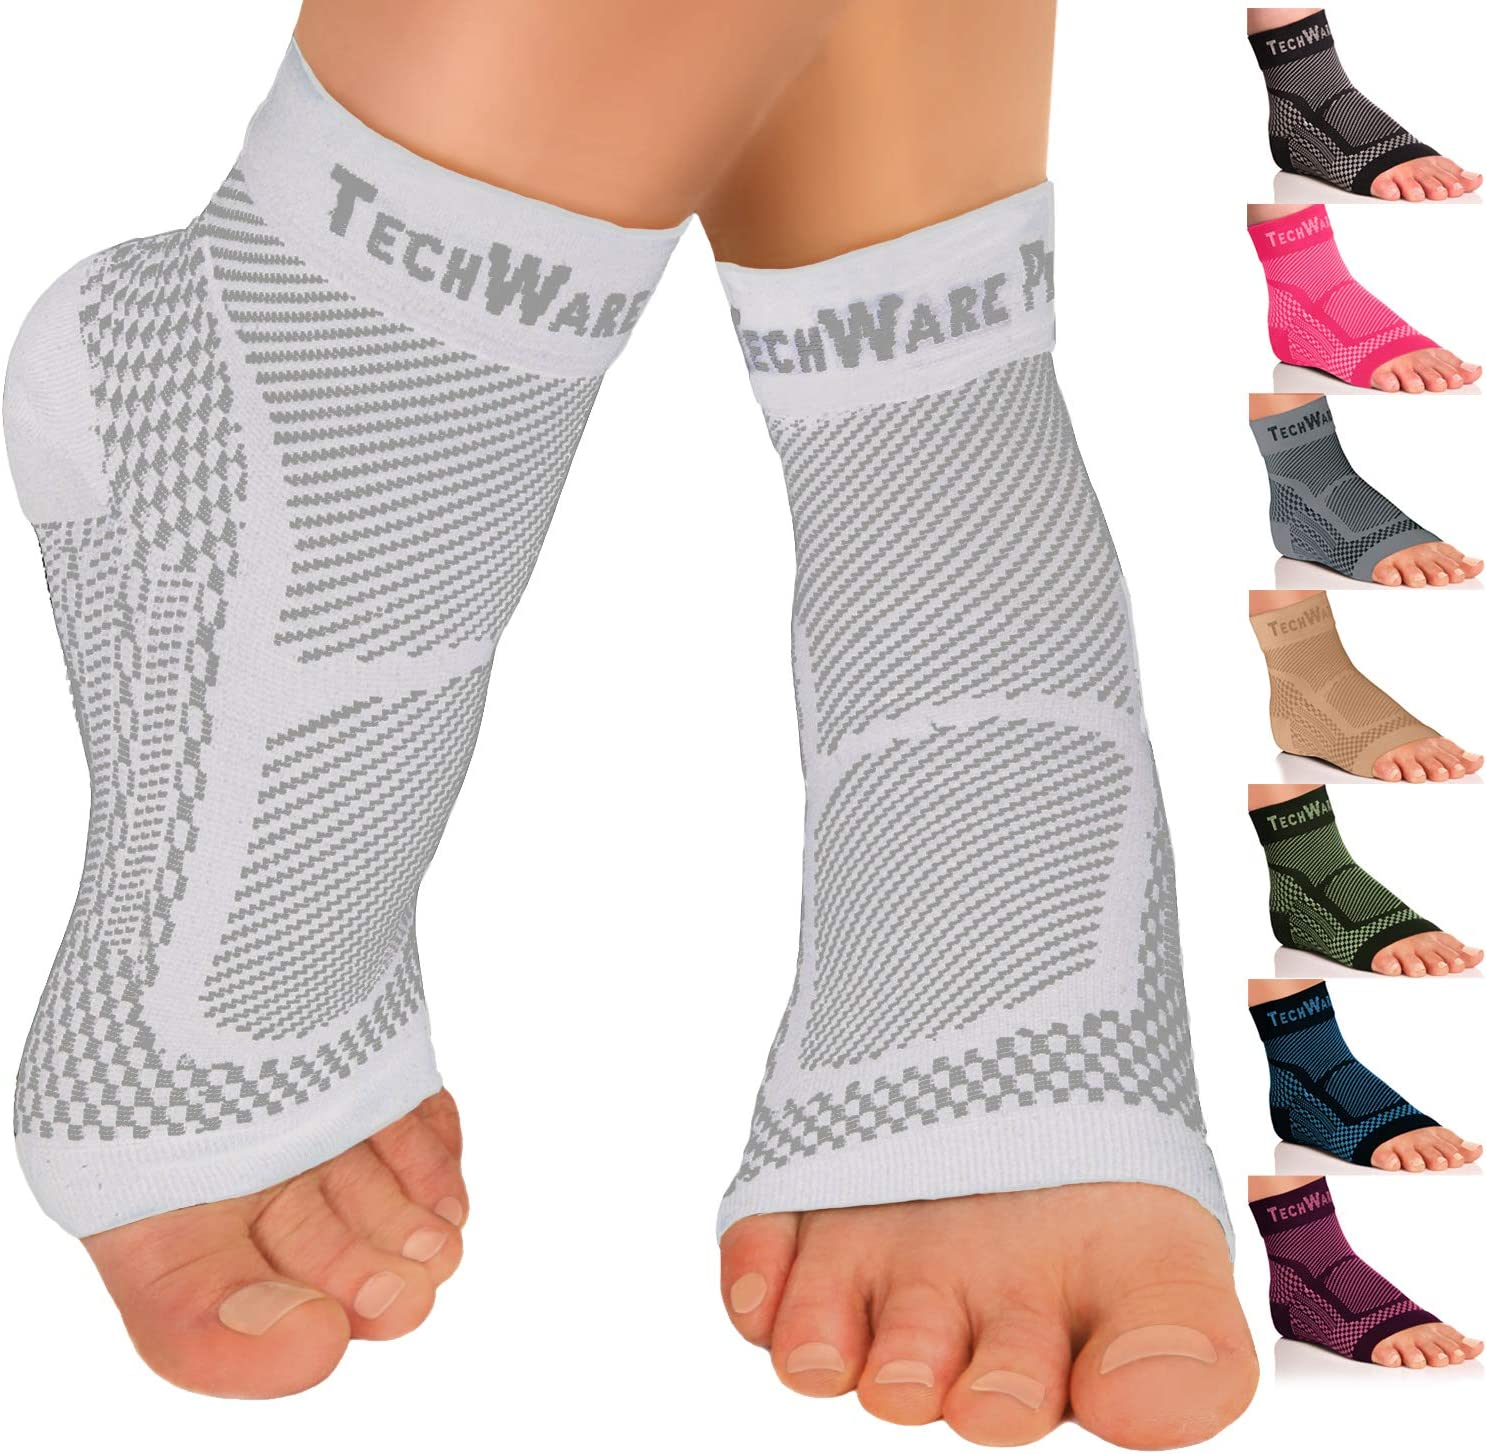 TechWare Pro Ankle Brace Compression Sleeve - Relieves Achilles Tendonitis, Joint Pain. Plantar Fasciitis Sock with Foot Arch Support Reduces Swelling & Heel Spur Pain. Injury Recovery for Sports : Sports & Outdoors